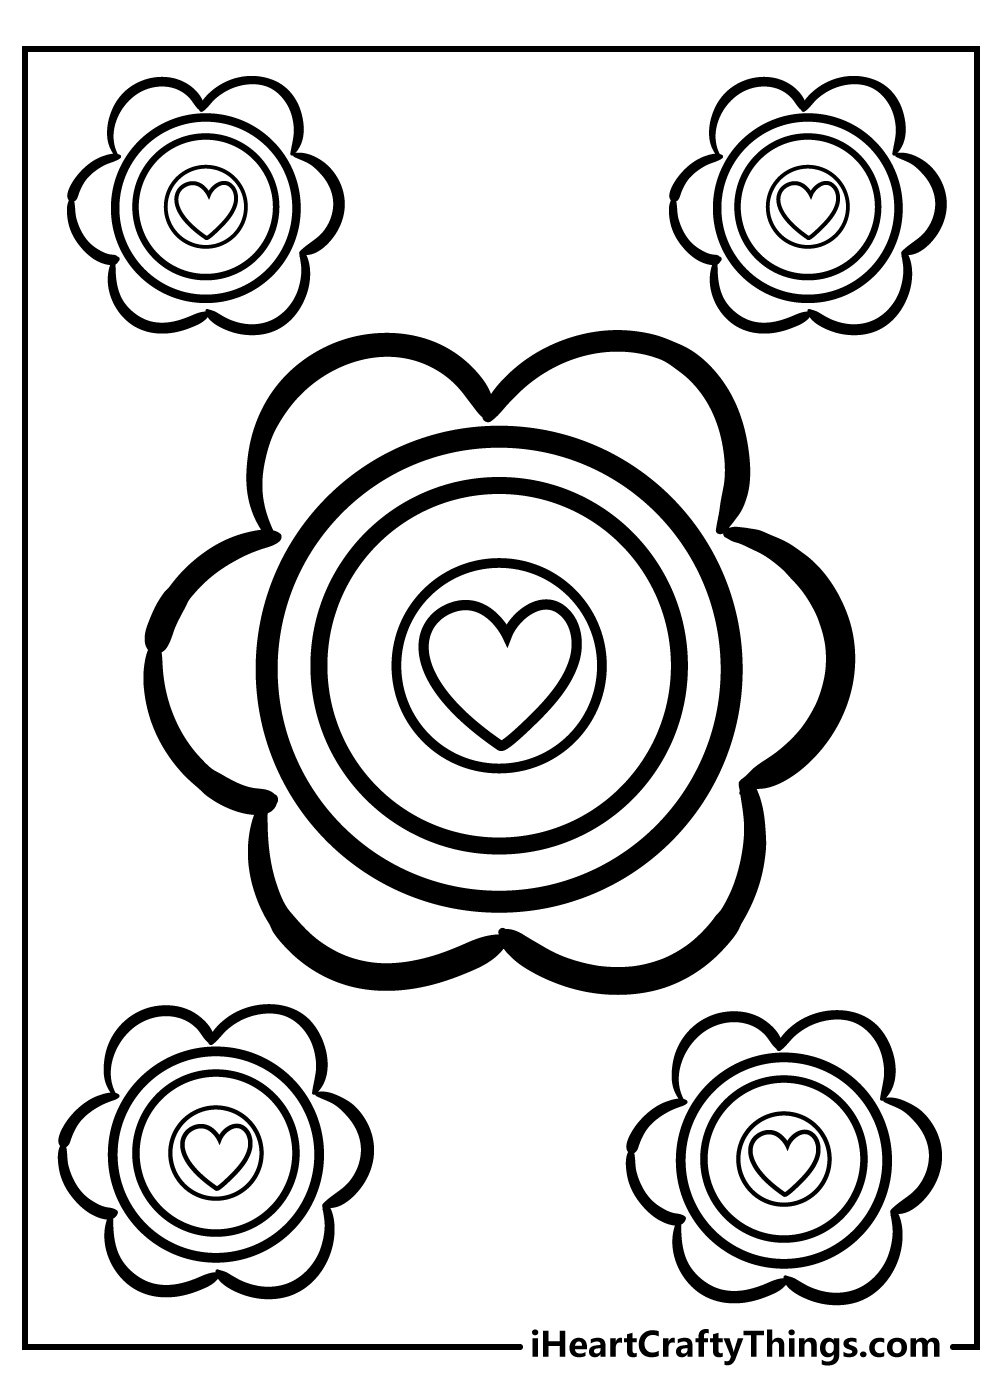 mother's day simple flower coloring pages download now